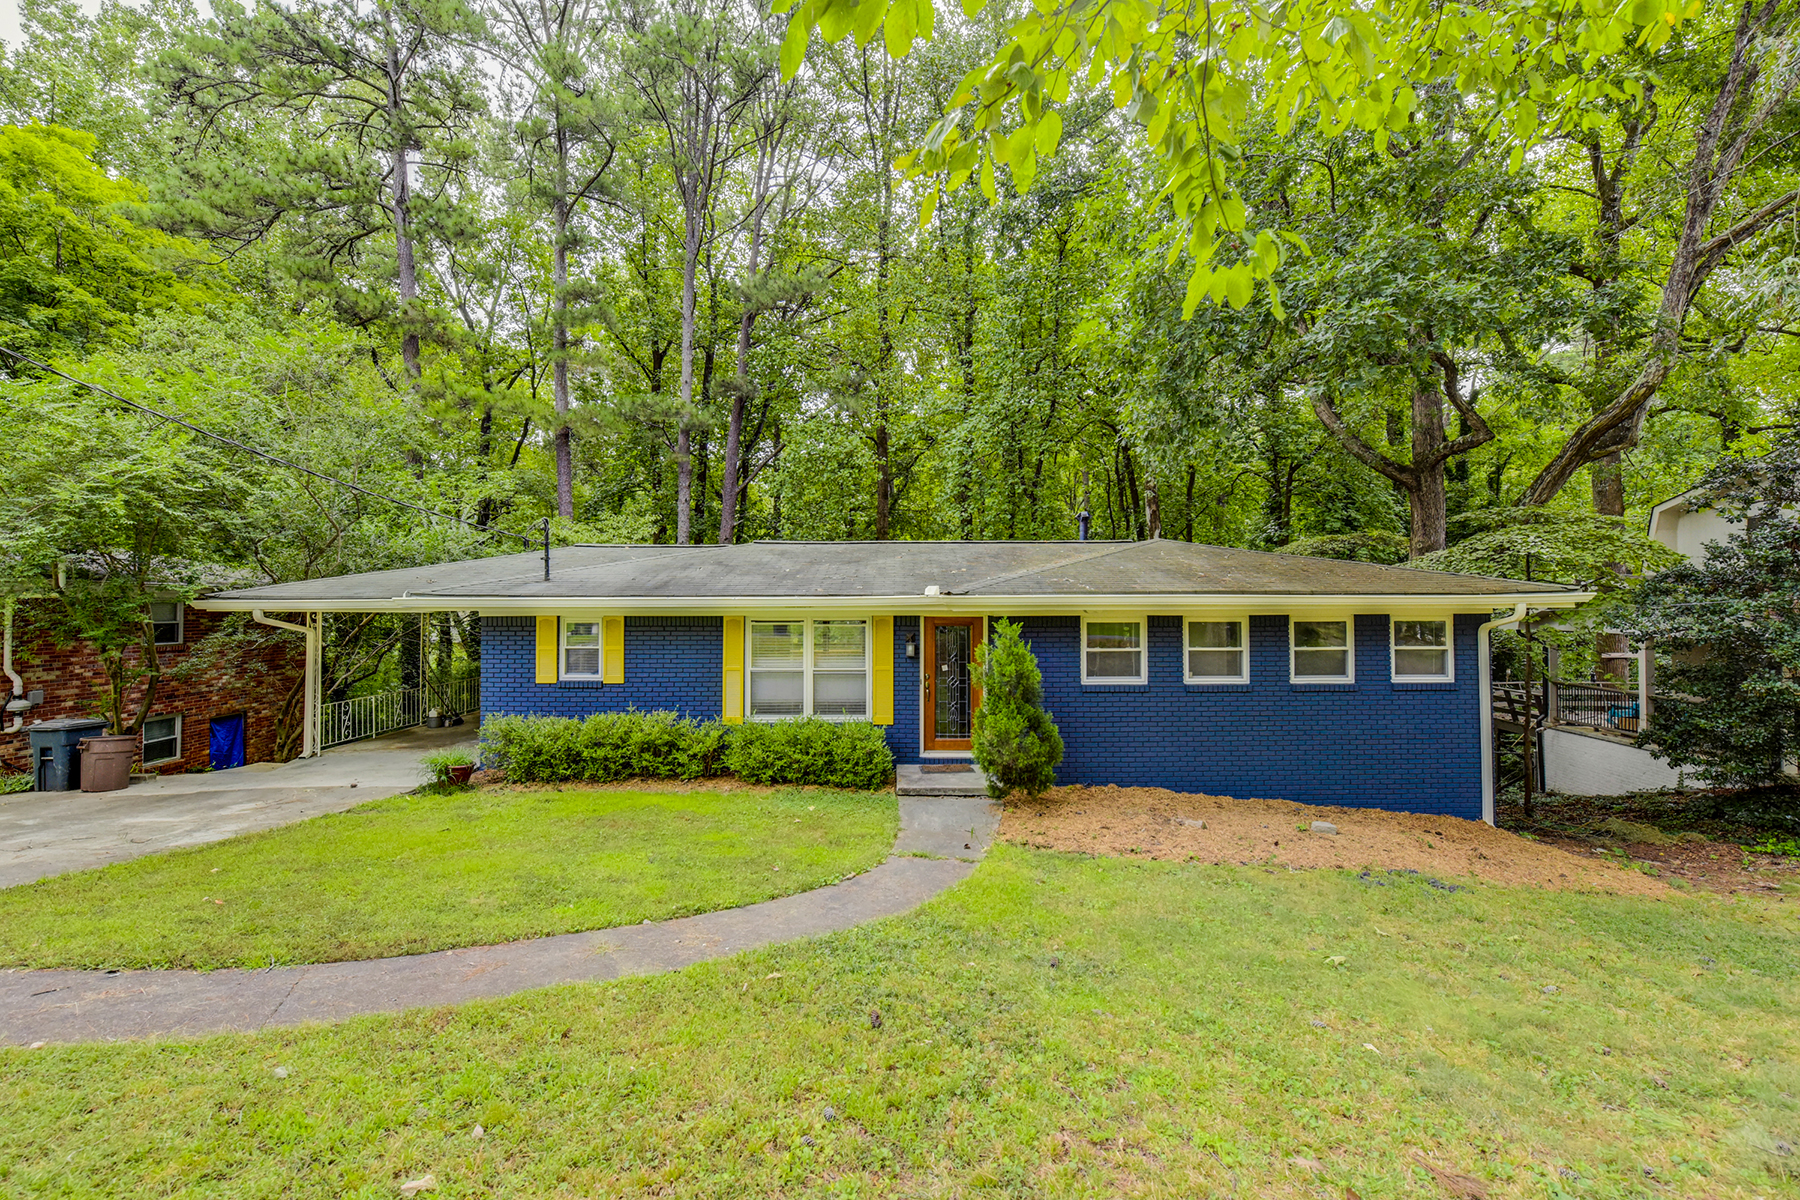 Single Family Home for Sale at Charming Chamblee Ranch 2487 Woodacres Rd Chamblee, Georgia 30345 United States